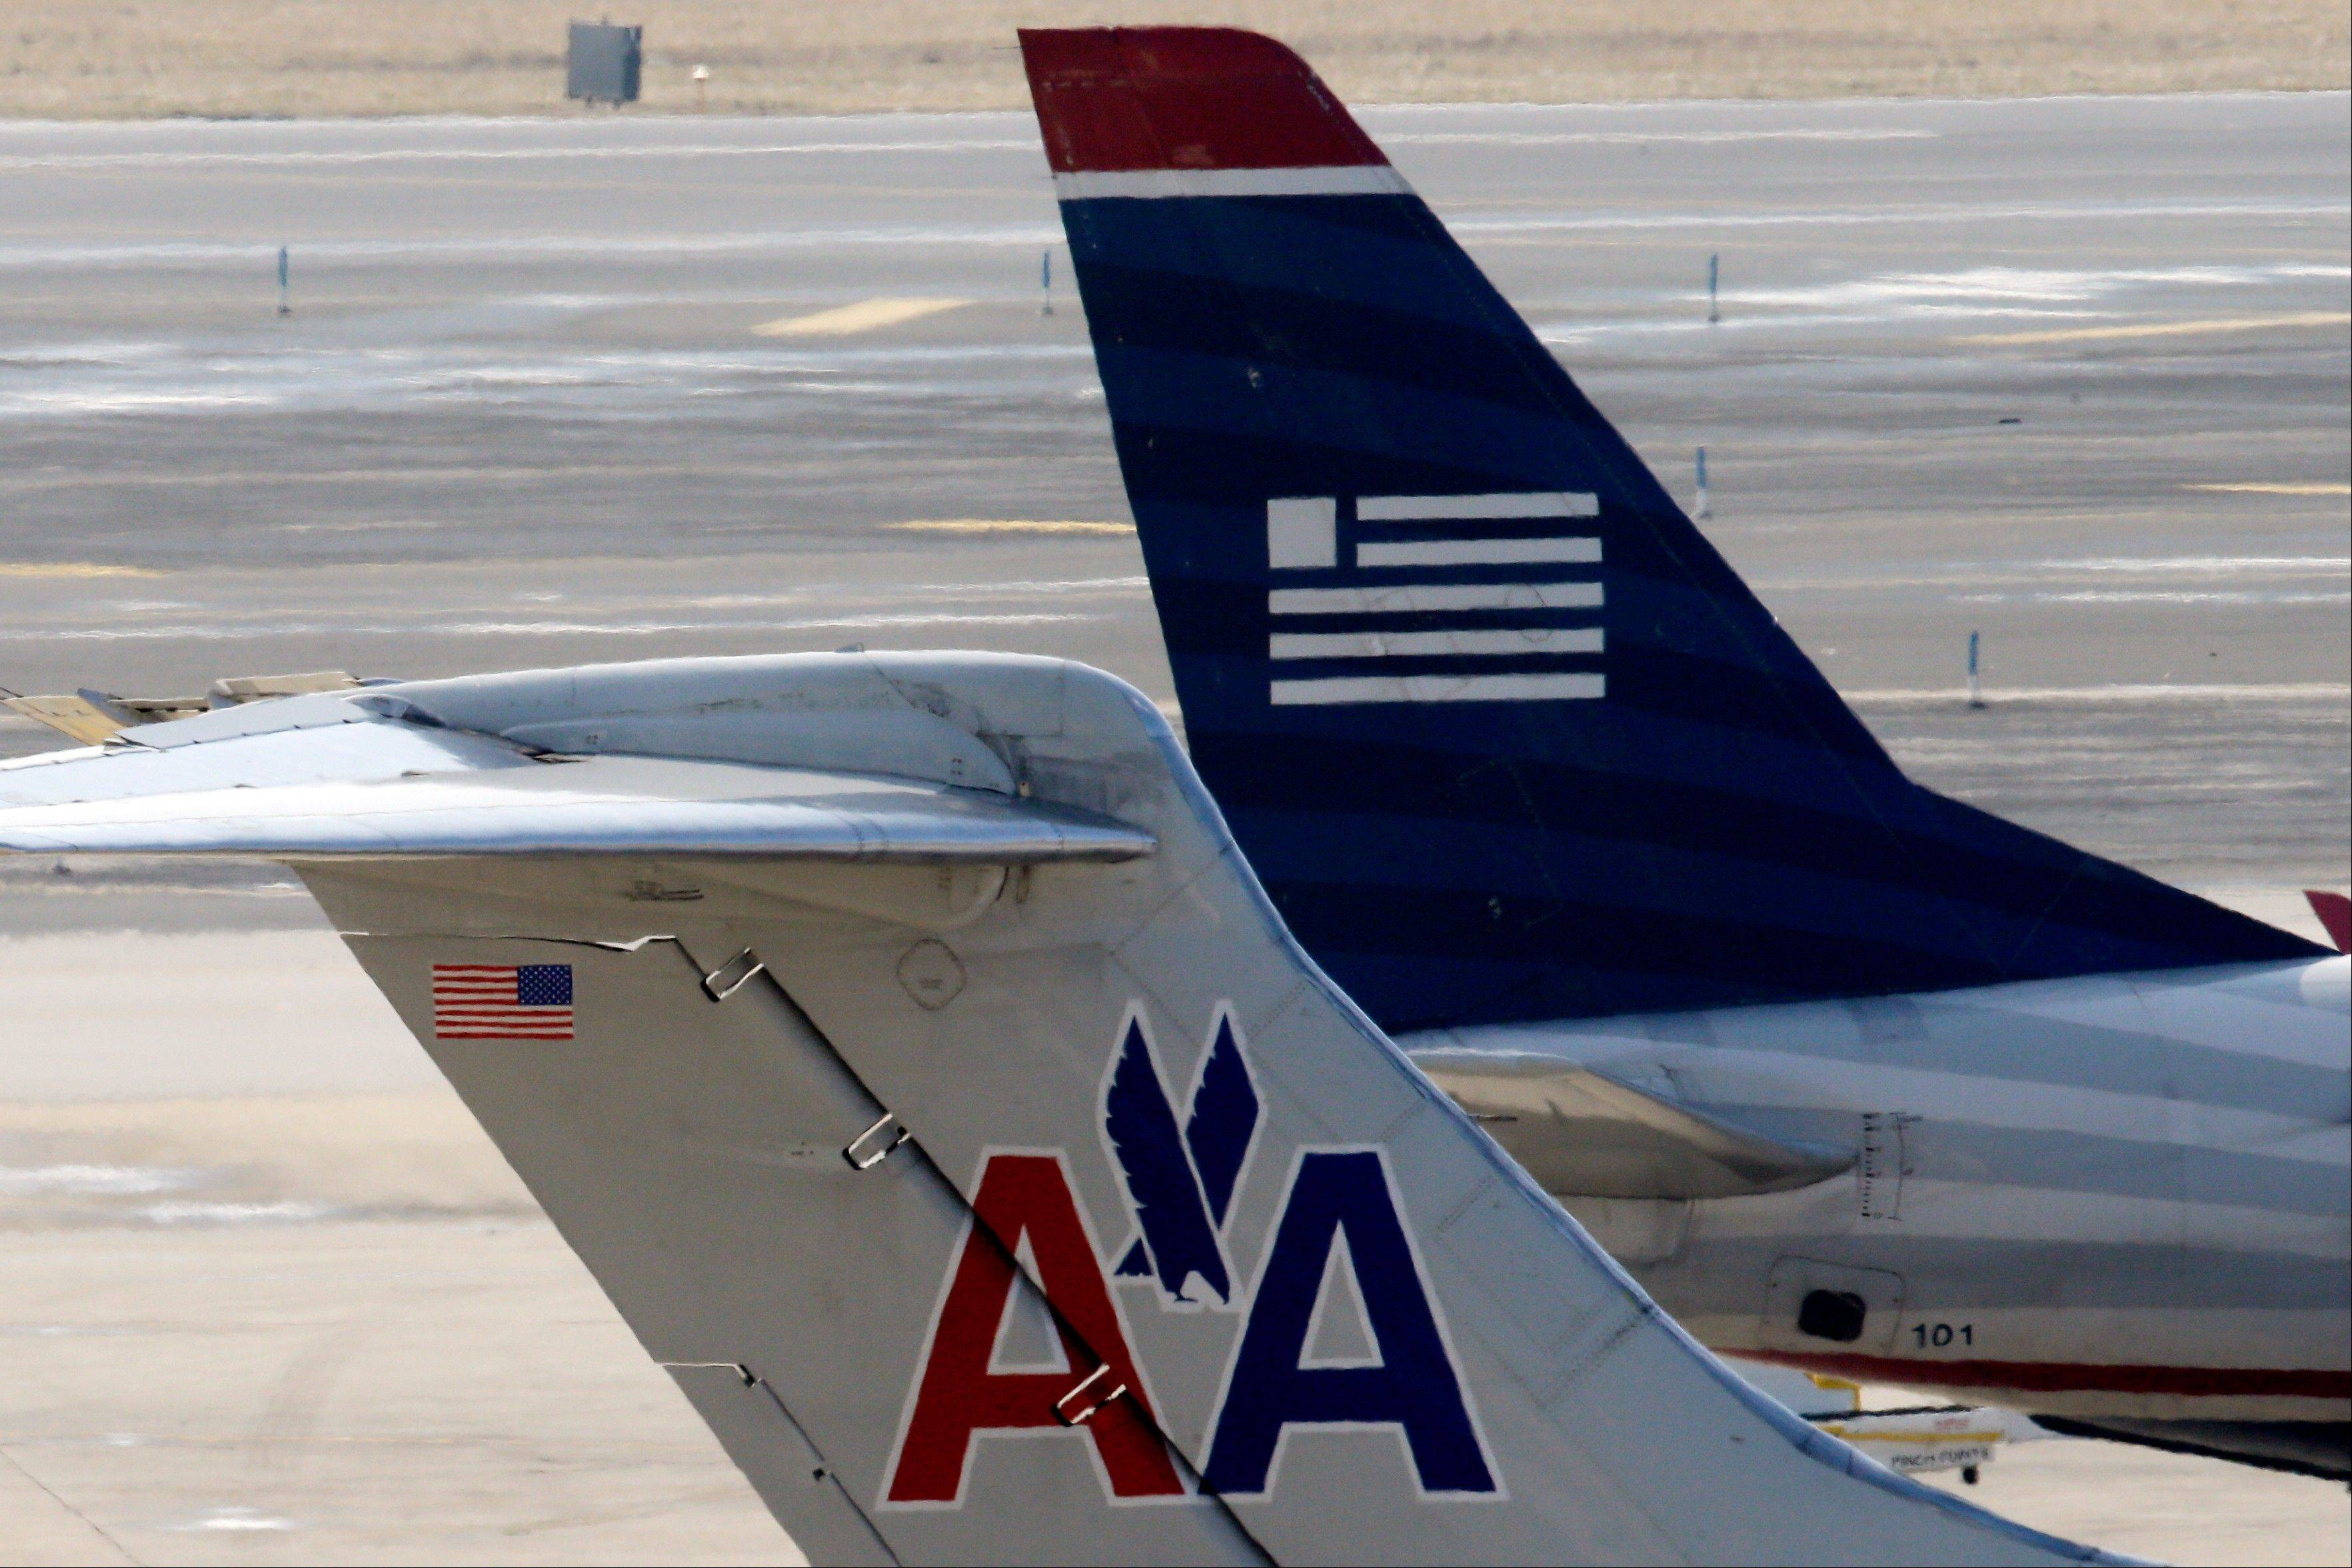 American Airlines and US Airways jets prepare for flight at a gate at the Philadelphia International Airport in Philadelphia. The Justice Department and a number of state attorneys general on Tuesday challenged a proposed $11 billion merger between US Airways Group Inc. and American Airlines' parent company, AMR Corp., in part because of what their executives have said about raising fares and fees.